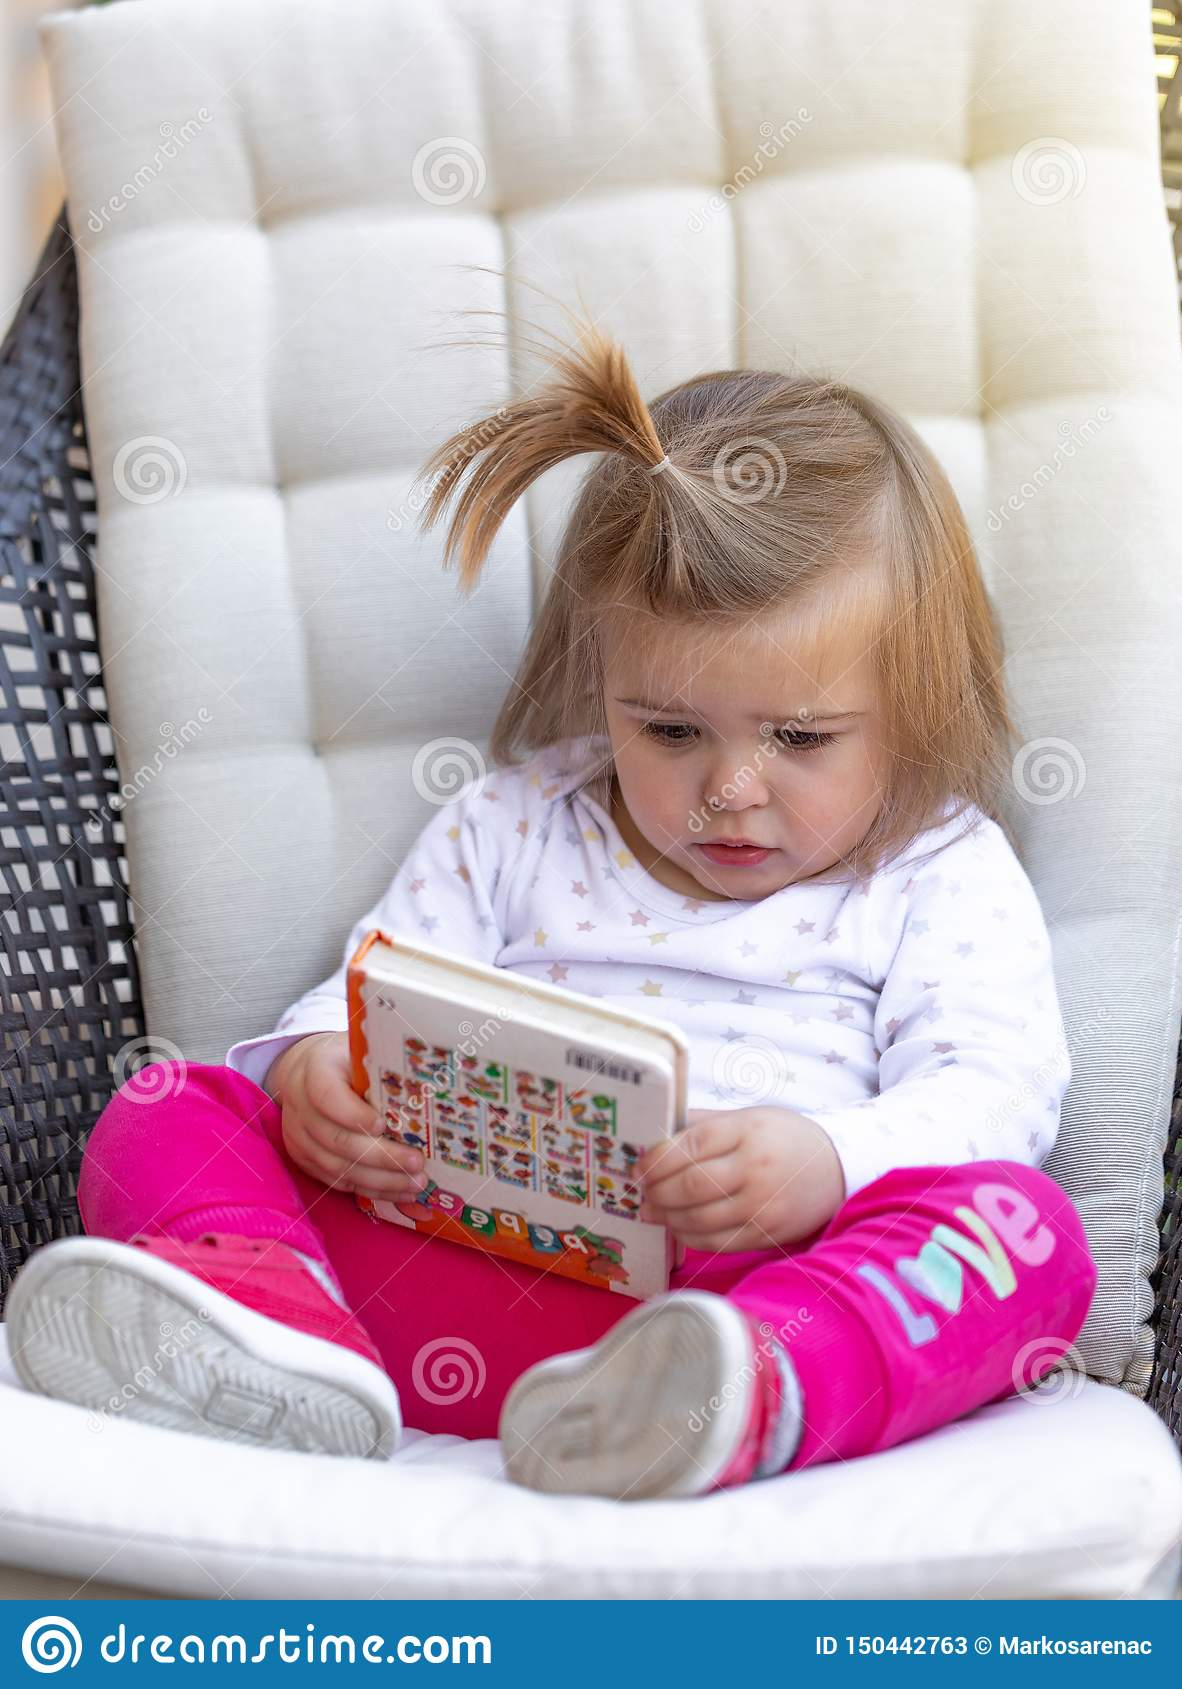 Baby Cute Girl Read Book Child Face Stock Image